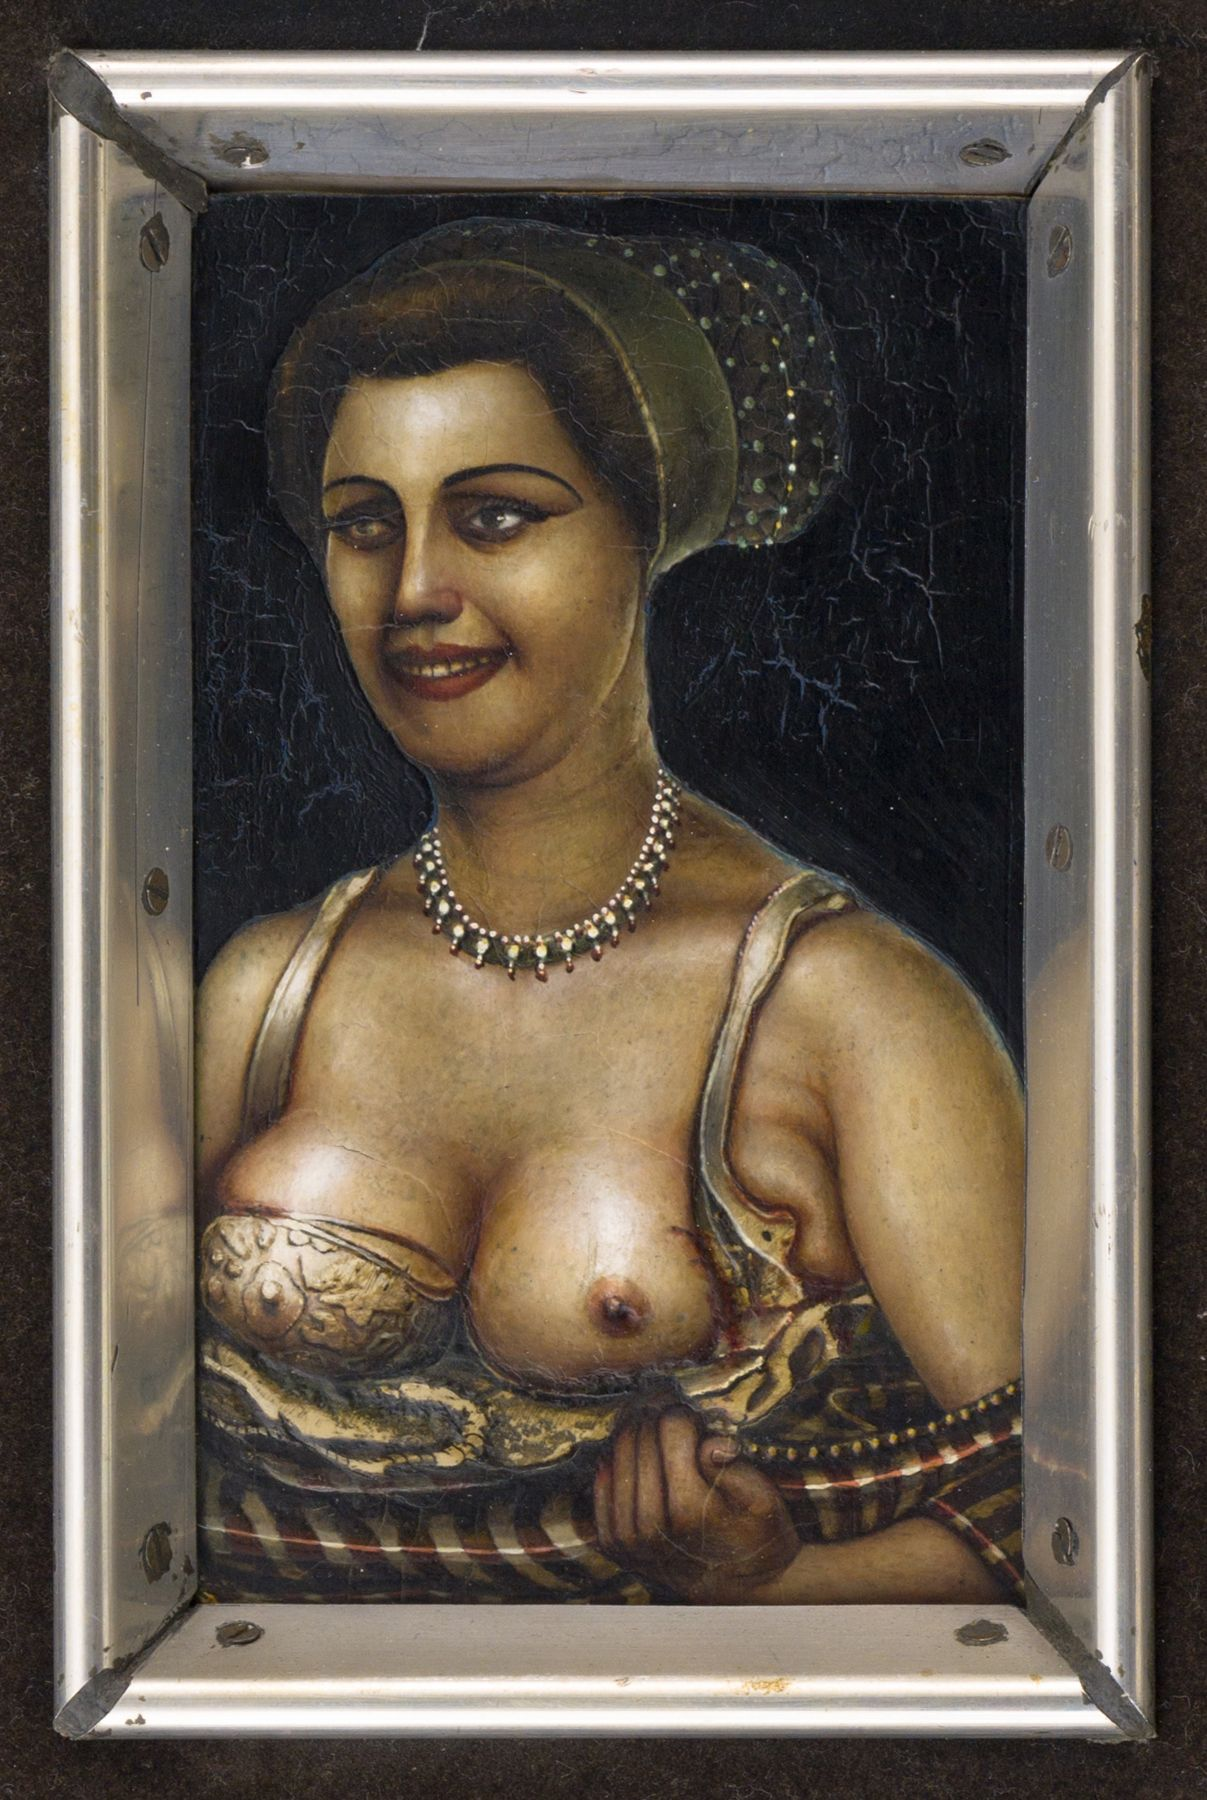 Gregory Gillespie, Lady with Jewels (also known as Woman with Beads) (SOLD), 1969, mixed media on panel, 6 x 3 1/2 inches